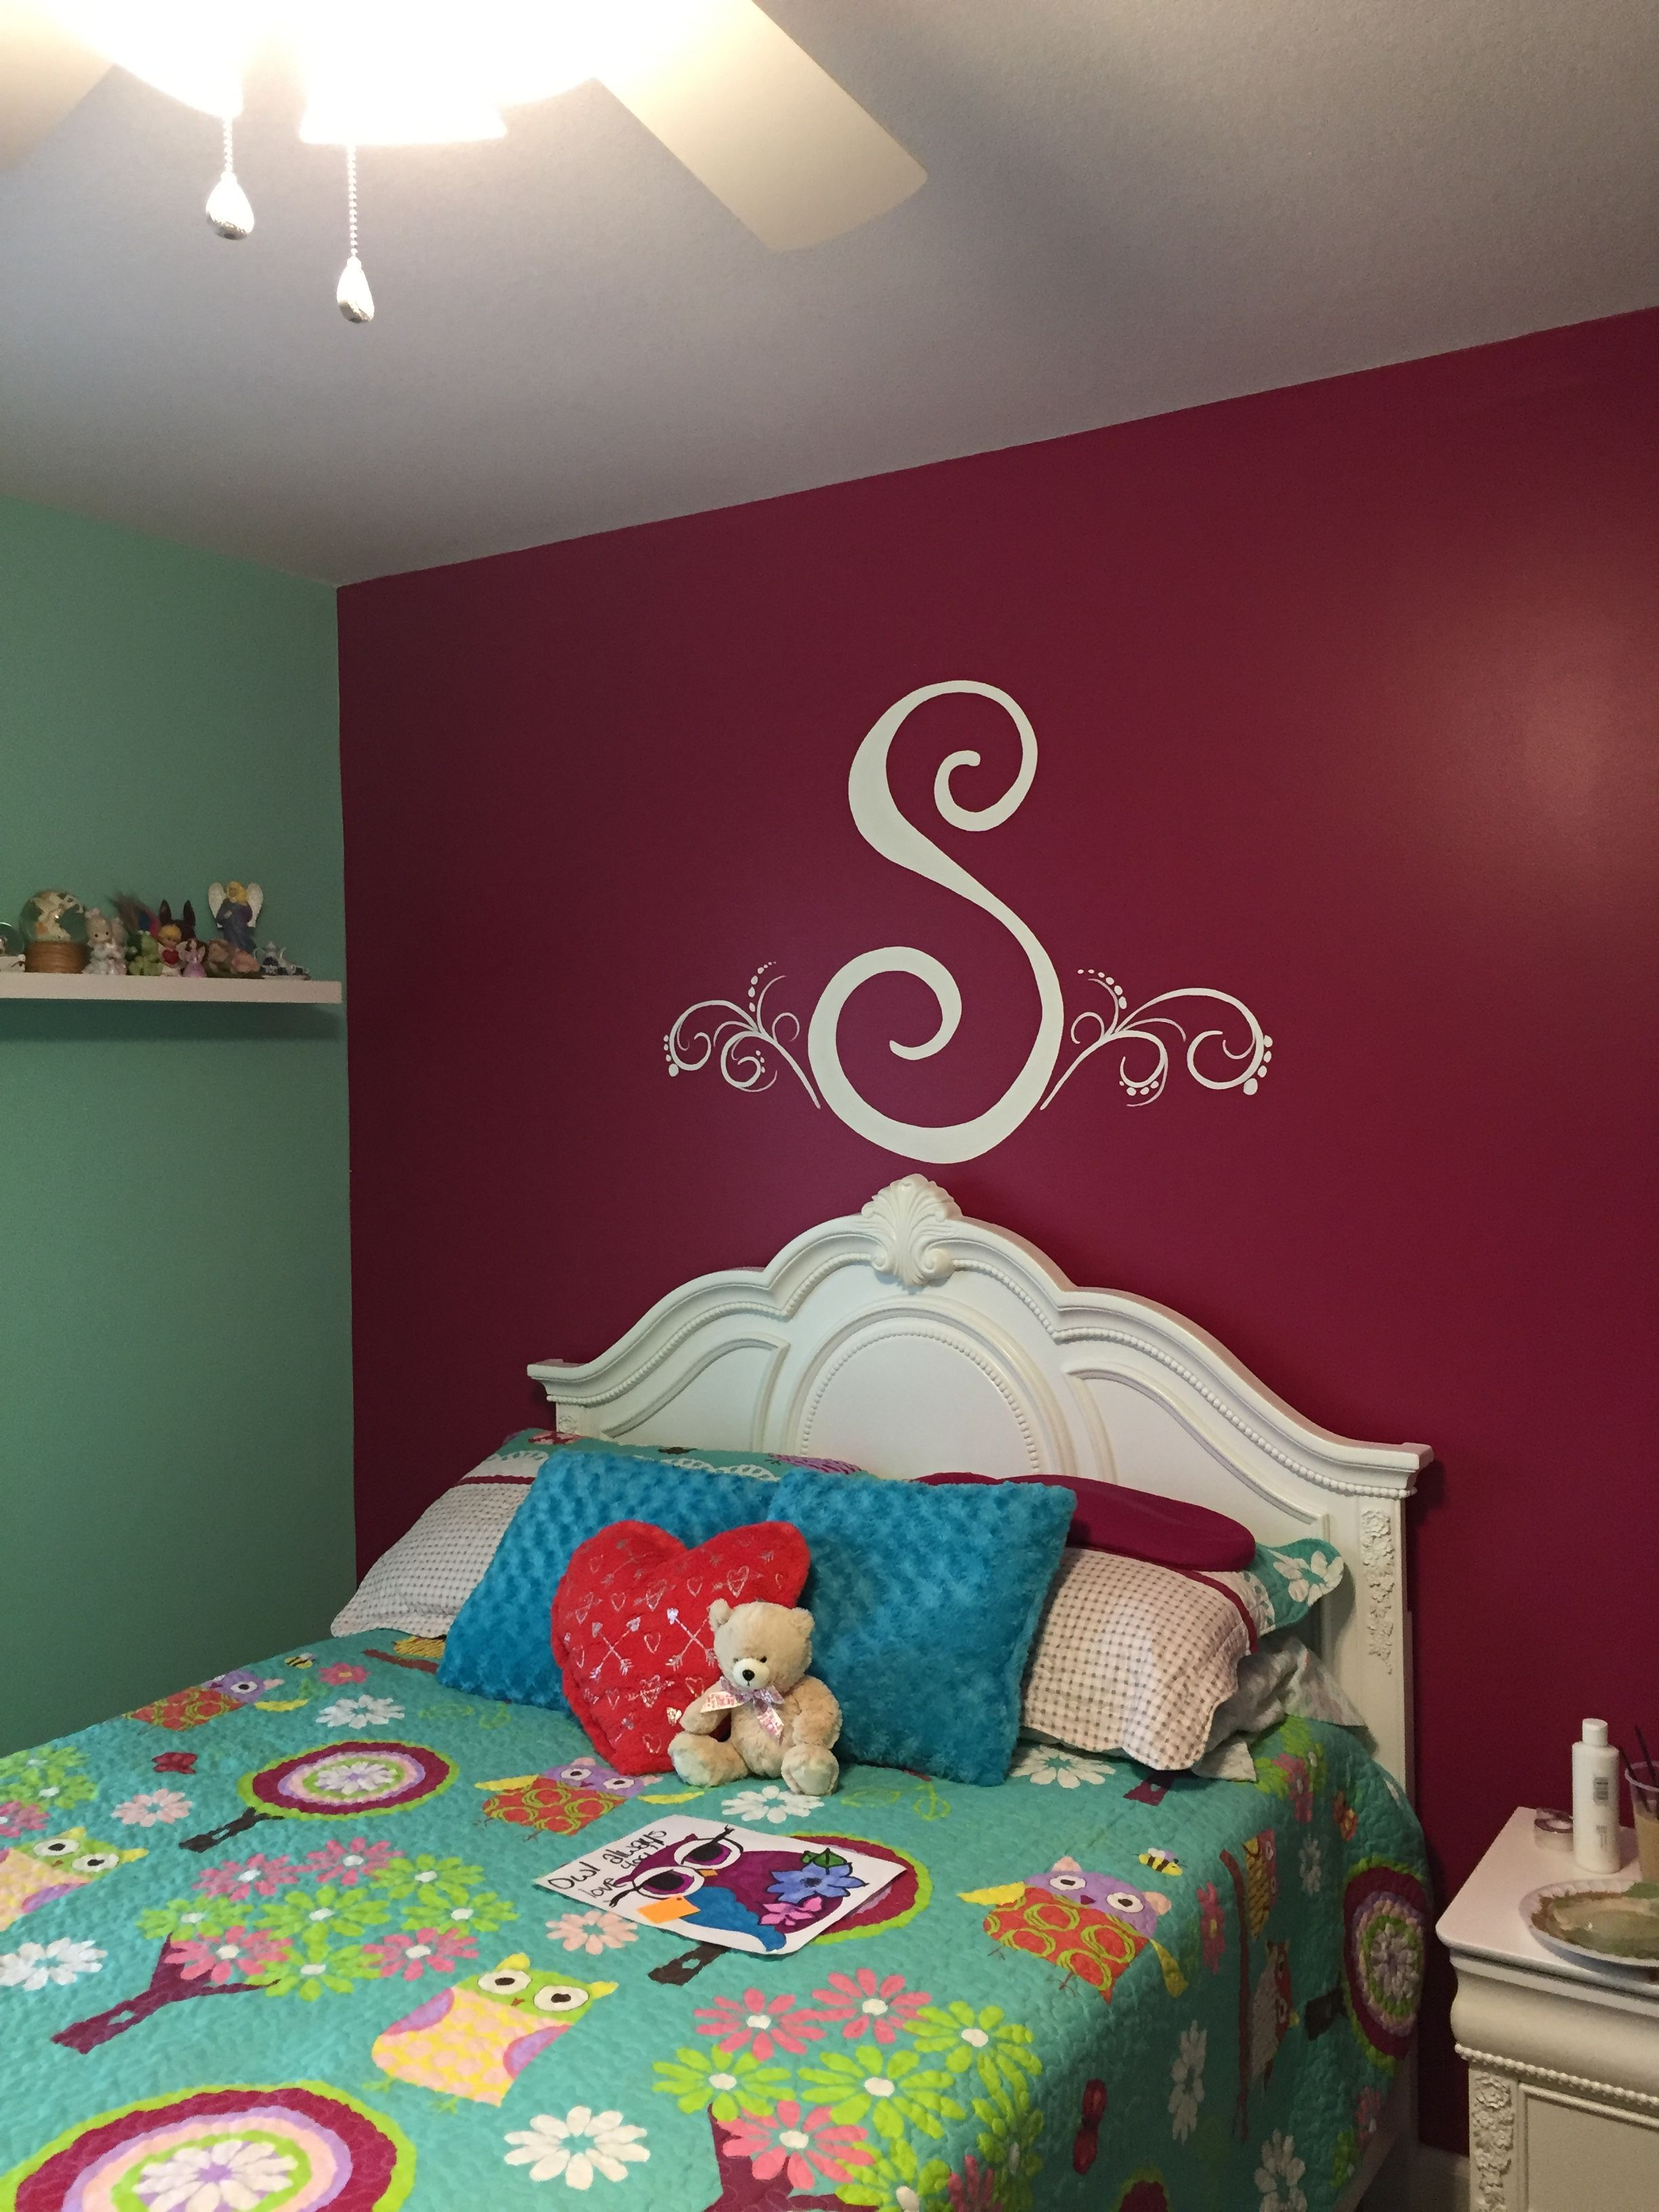 I Painted This S Initial In A Bedroom My Murals